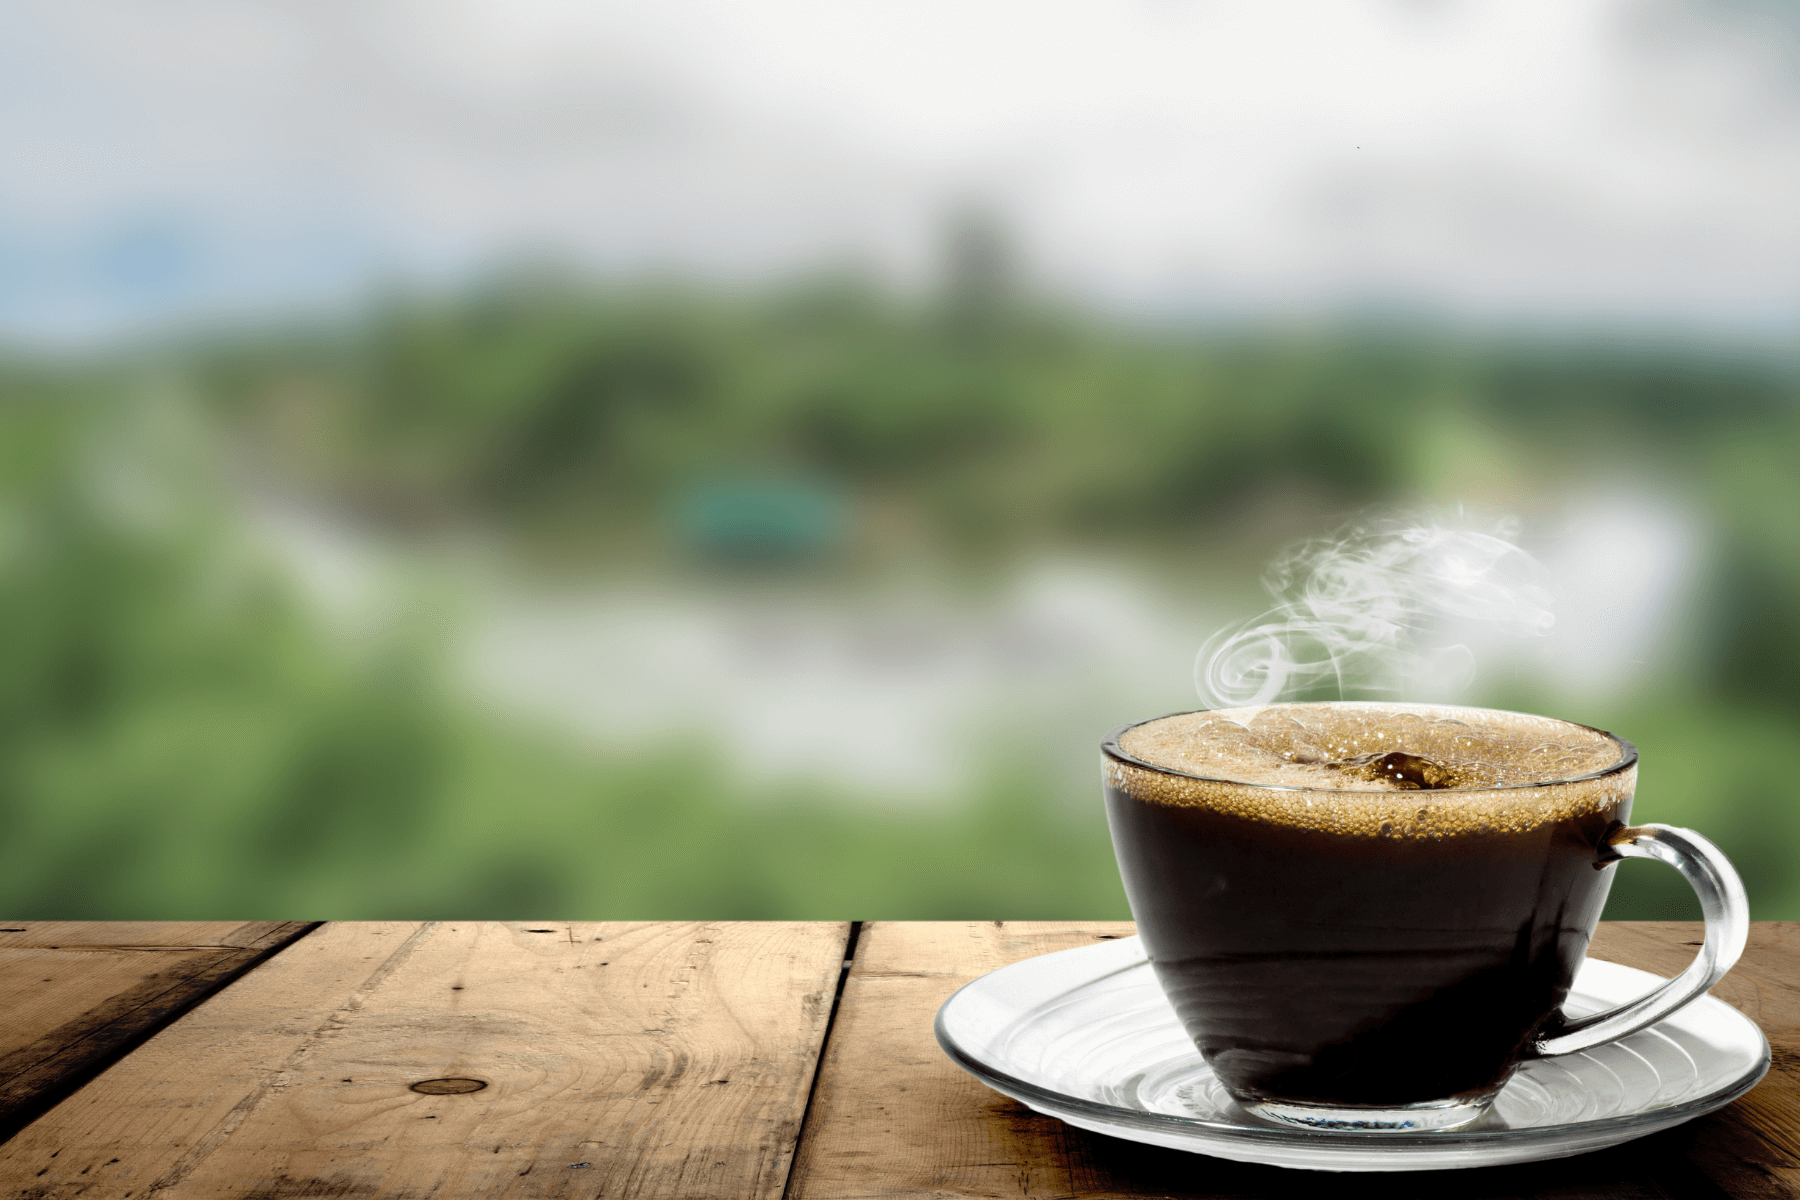 7 Coffee Facts Seniors Should Know